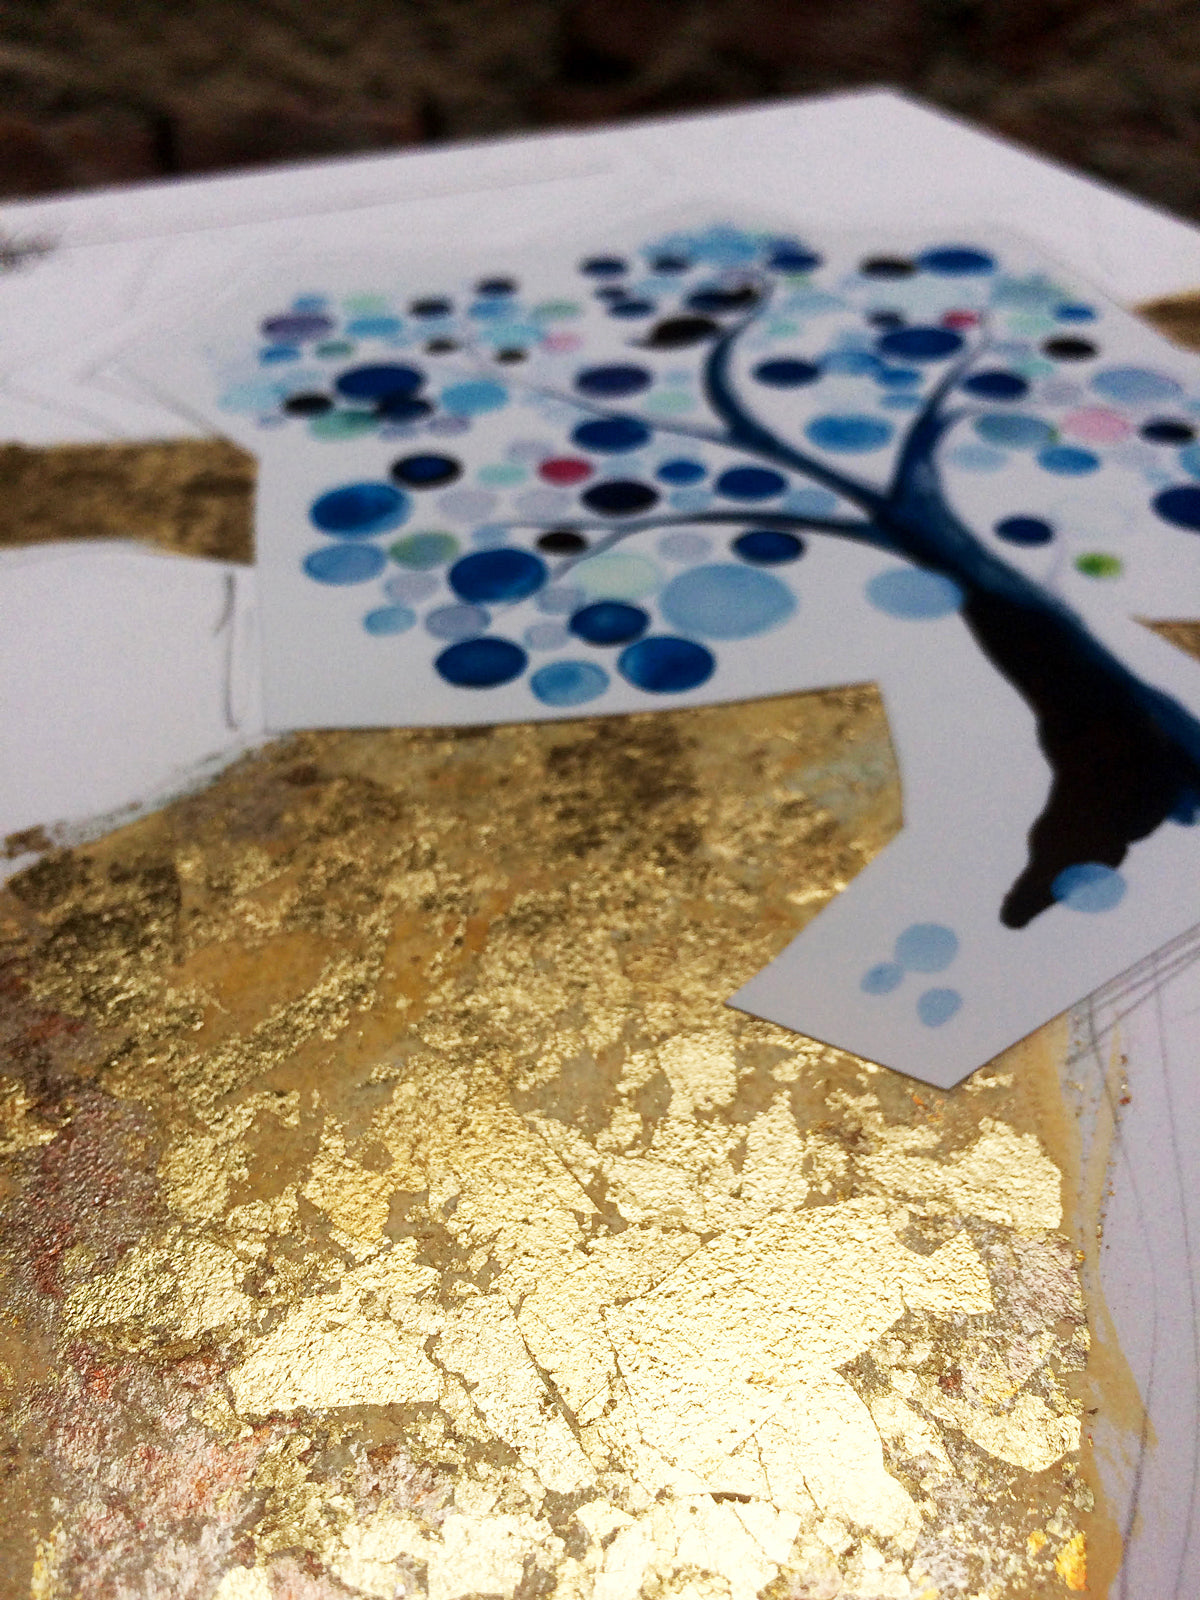 Gold leaf tree of life artwork from Gan Eden series